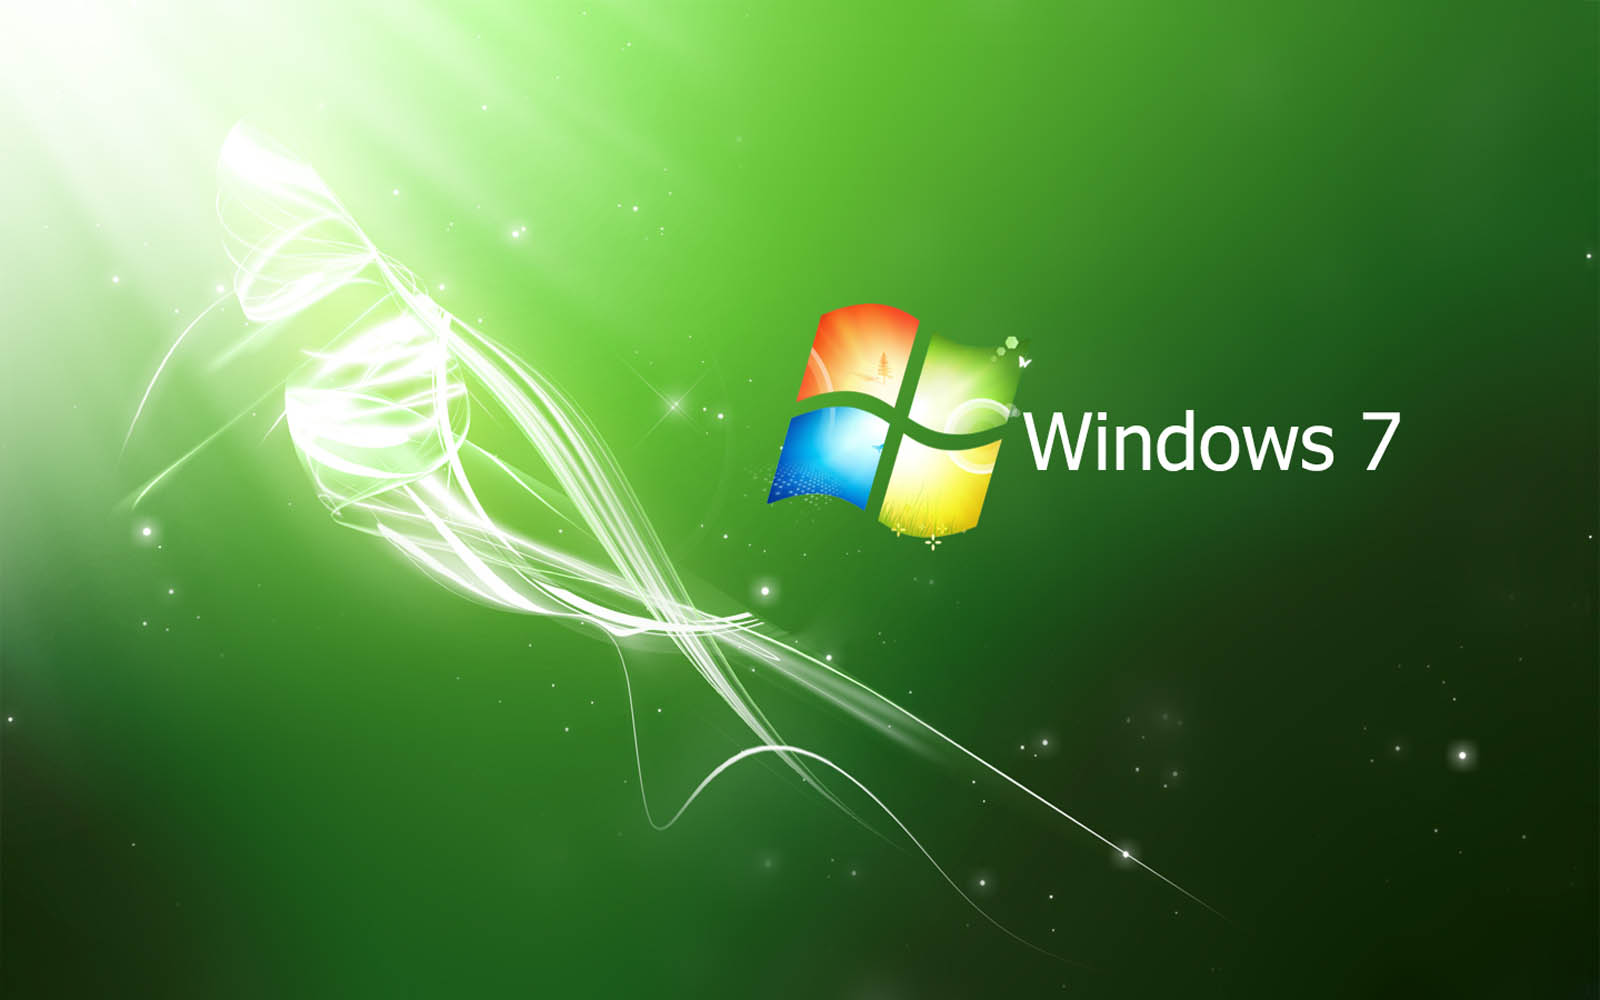 Windows 7 desktop backgrounds   SF Wallpaper 1600x1000